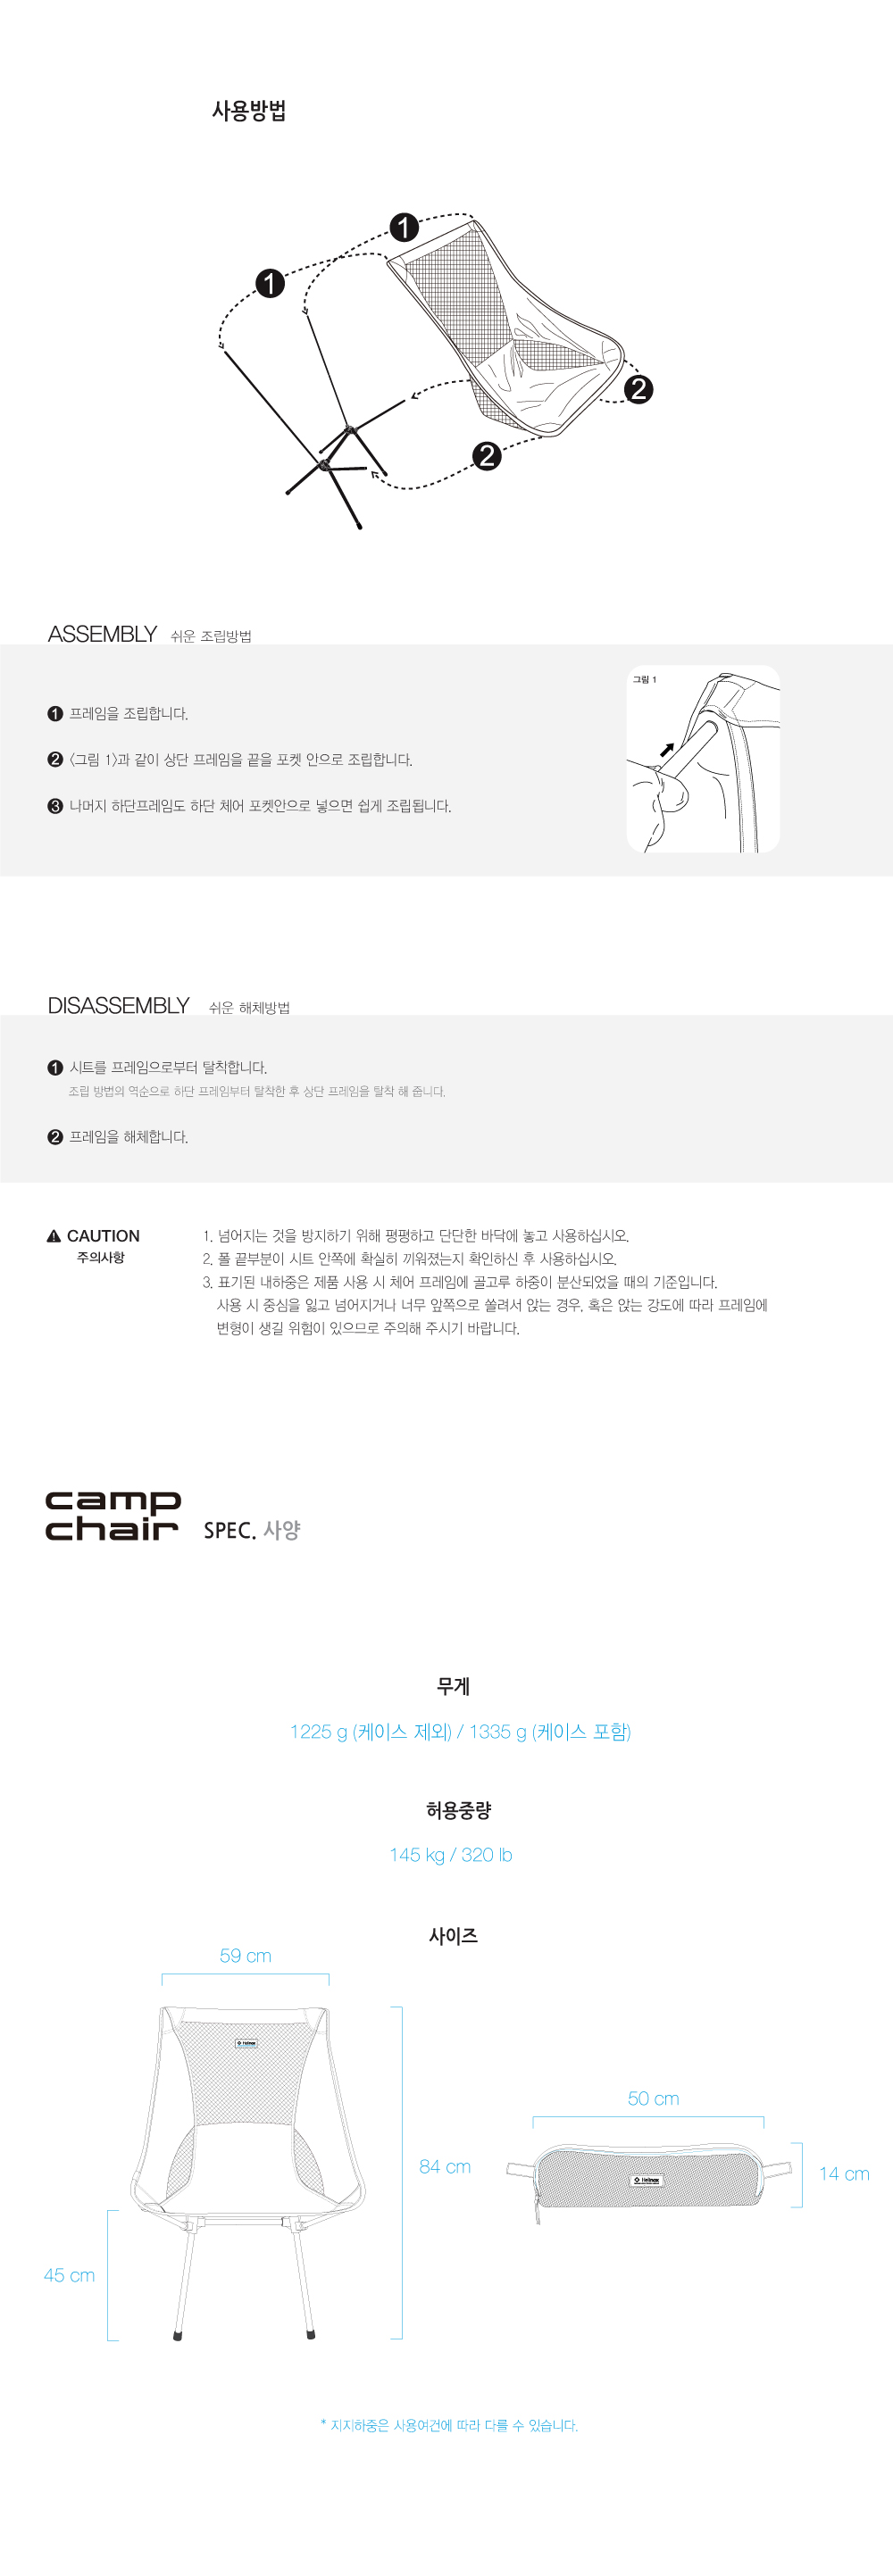 20150108-Helinox_camp-chair-(spec-sheet).jpg